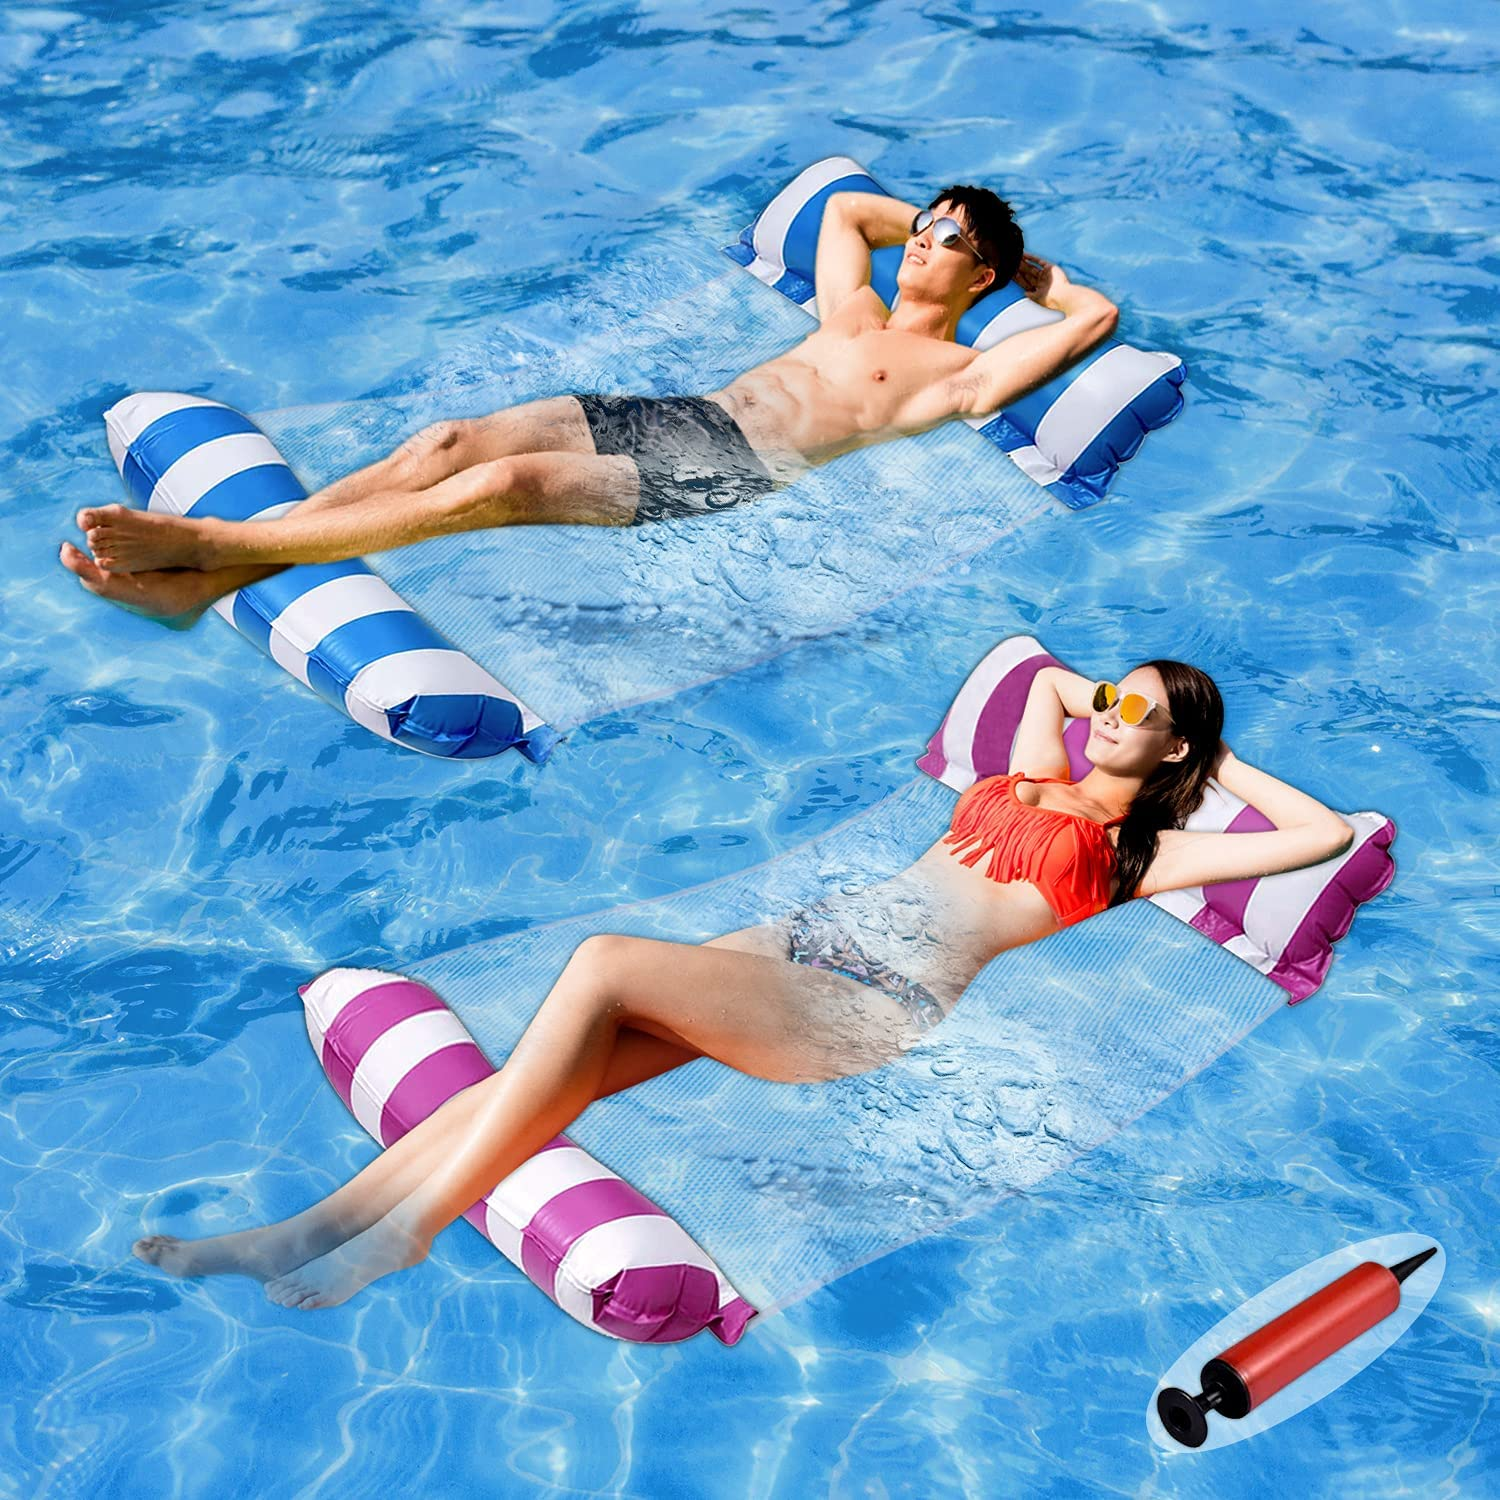 Floating Water Bed Beach Mattress Summer Pool Toys Swimming Pool Float Hammock Water Lounge swiftrans Inflatable Pool Floats with Canopy for Adults Pool Float Pool Raft with Shade Water Hammock